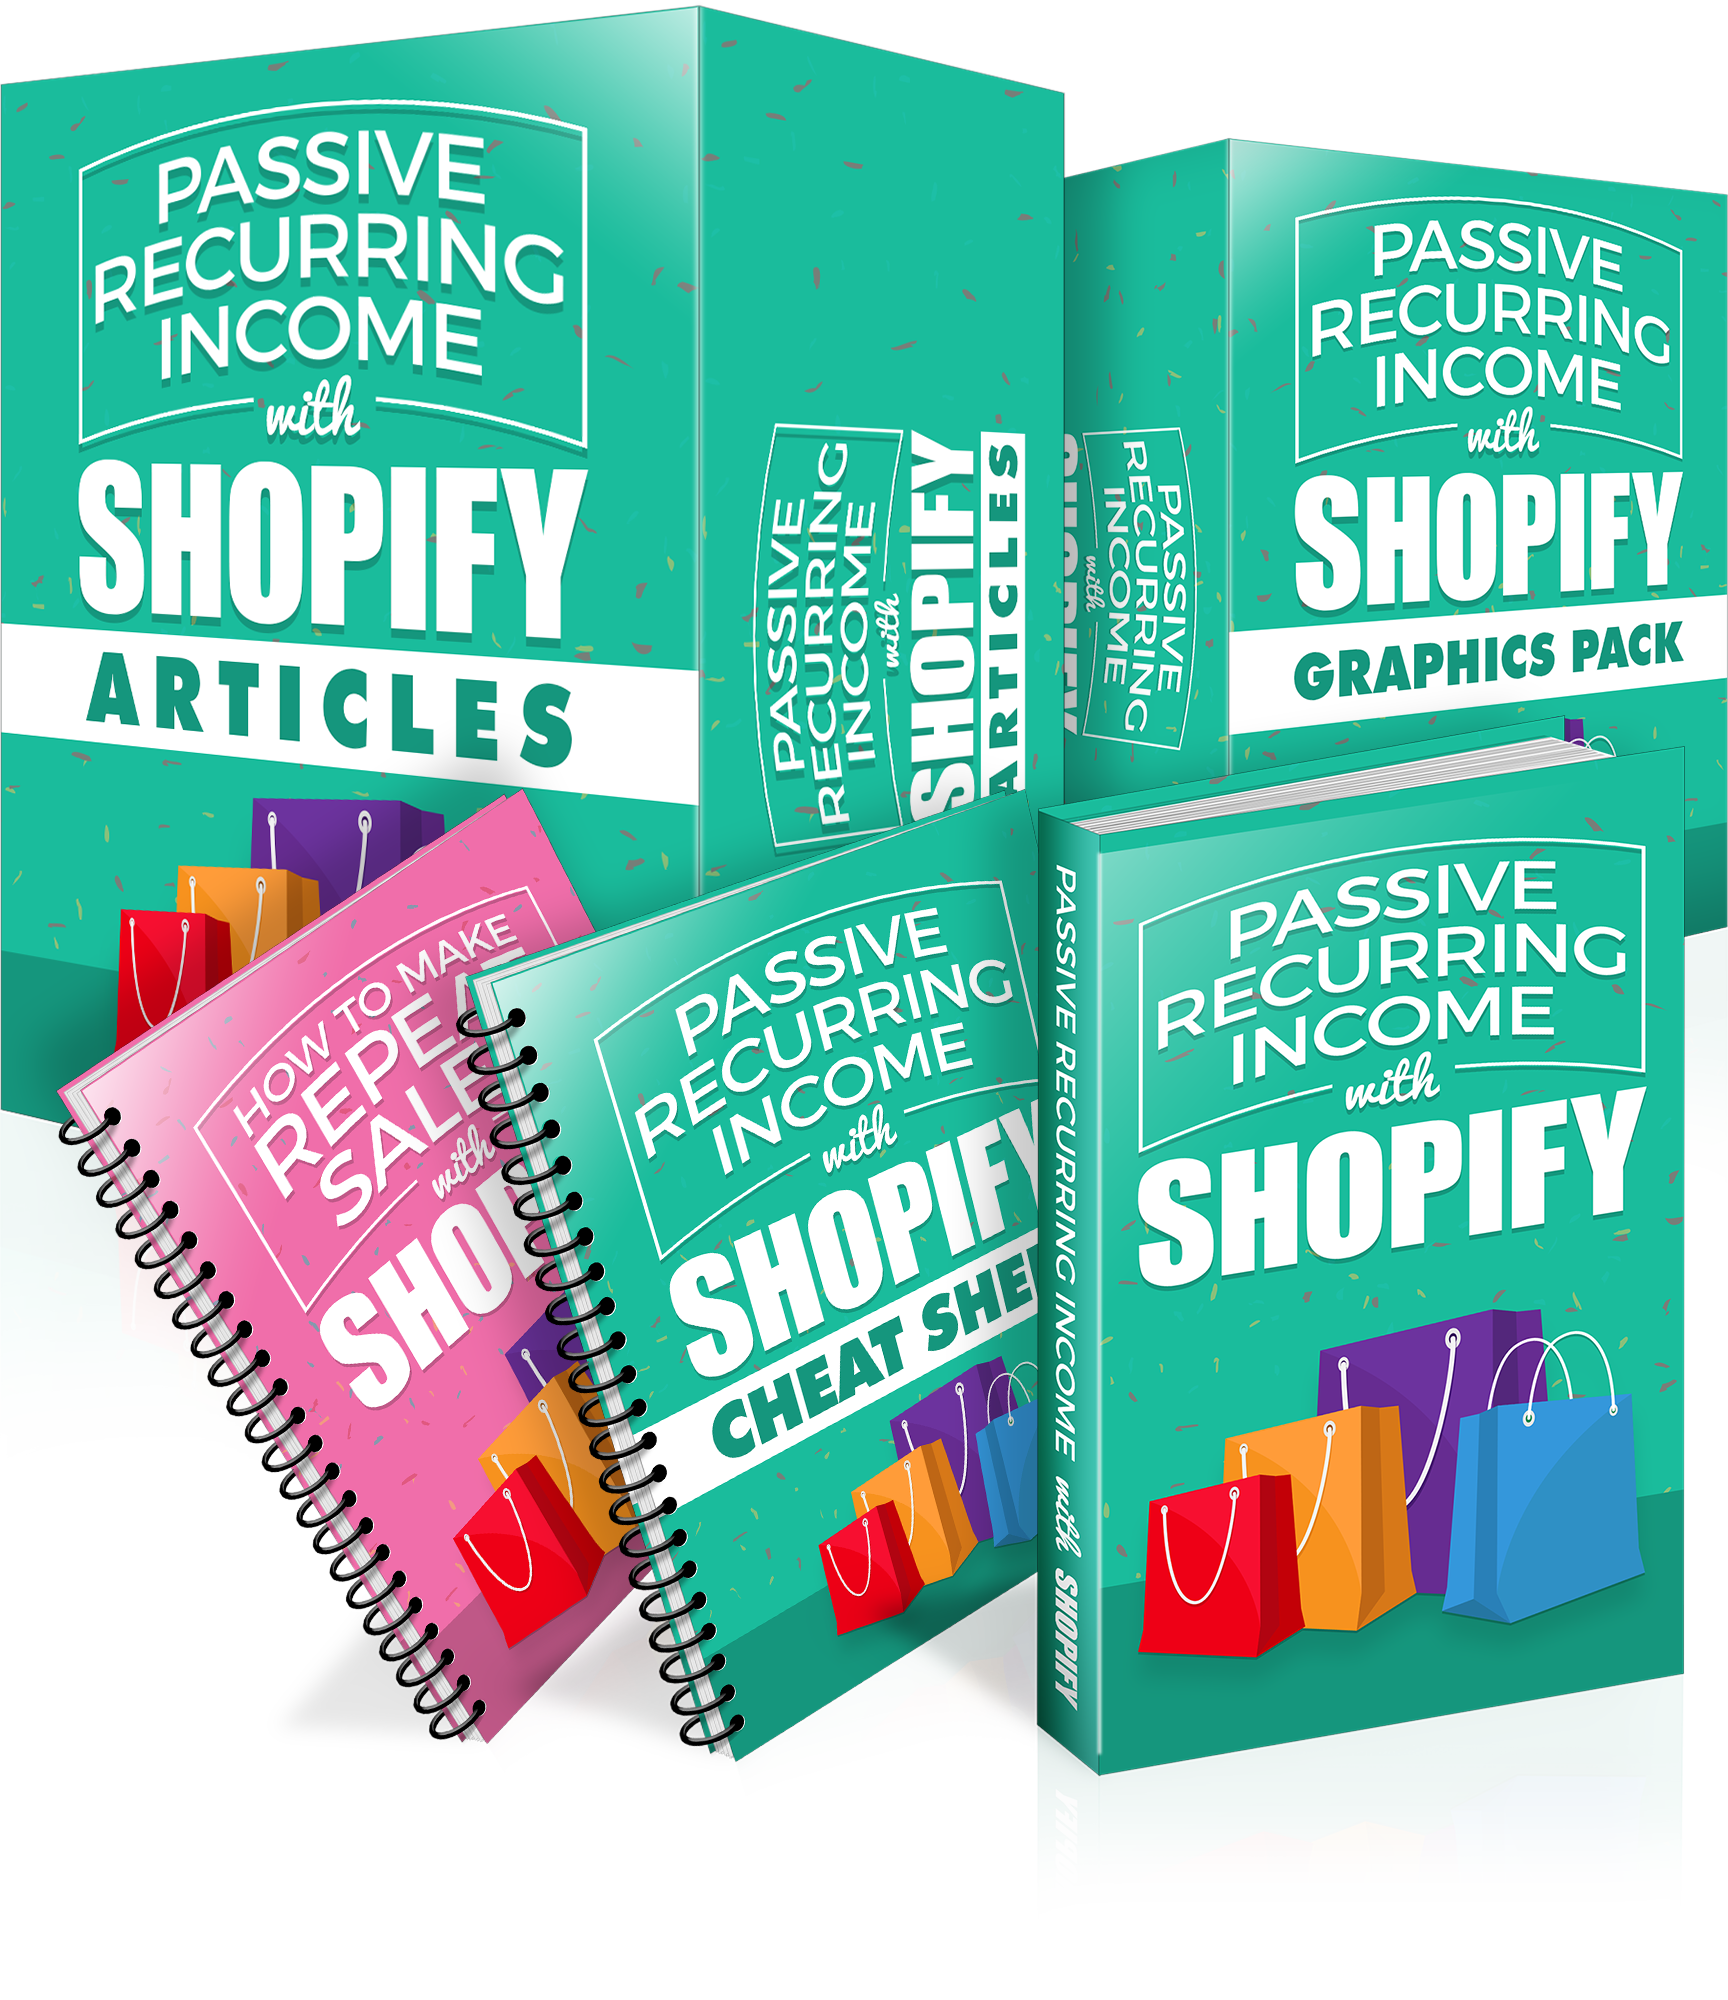 Passive-Recurring-Income-with-Shopify-Boxset